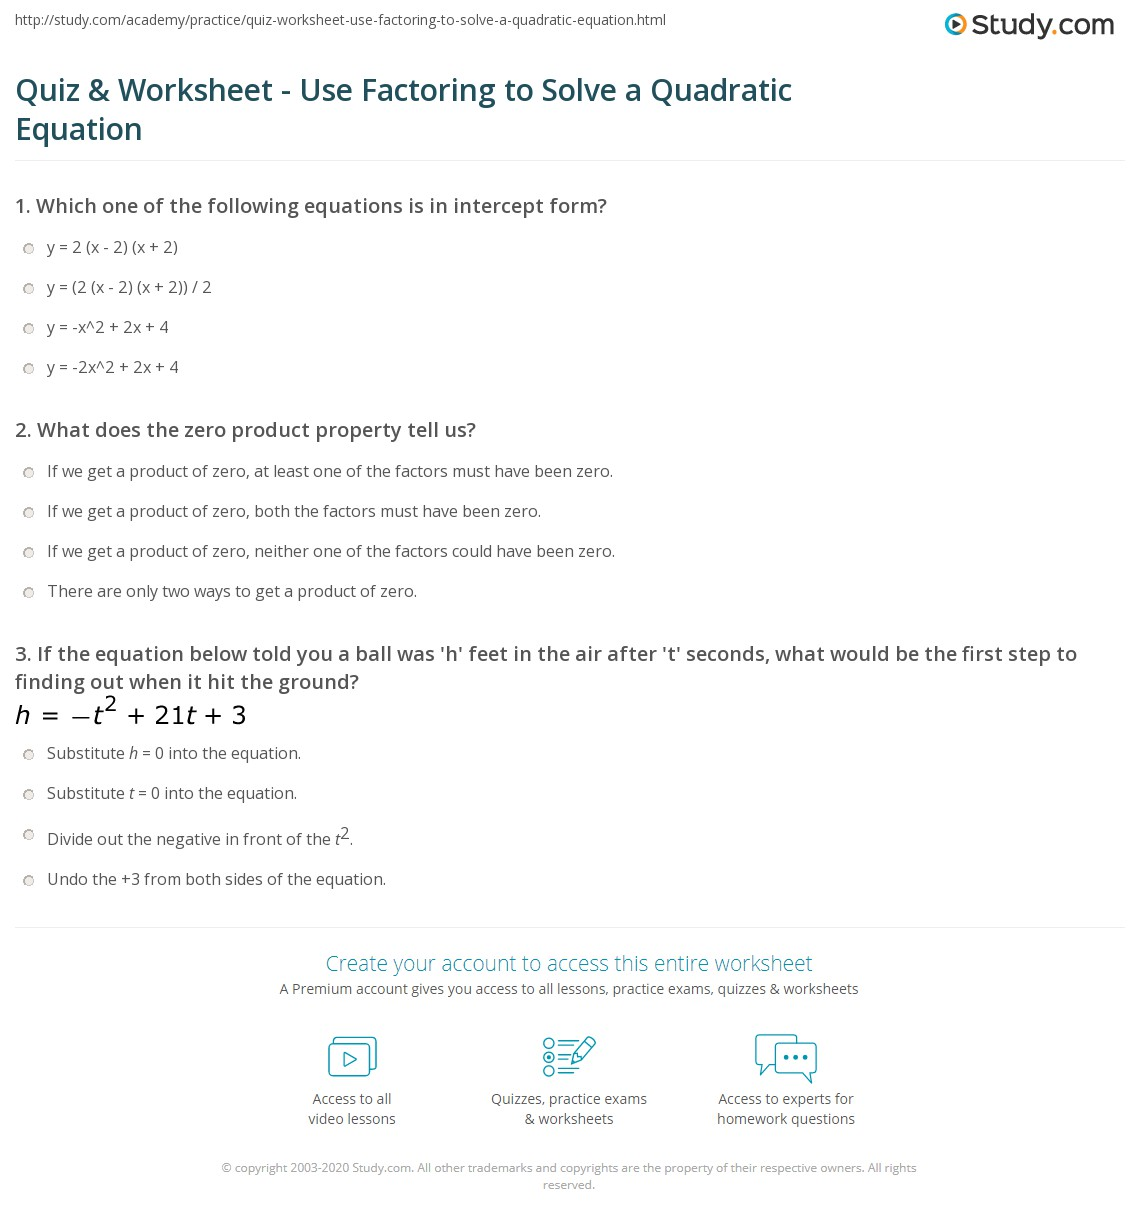 Print How to Solve a Quadratic Equation by Factoring Worksheet